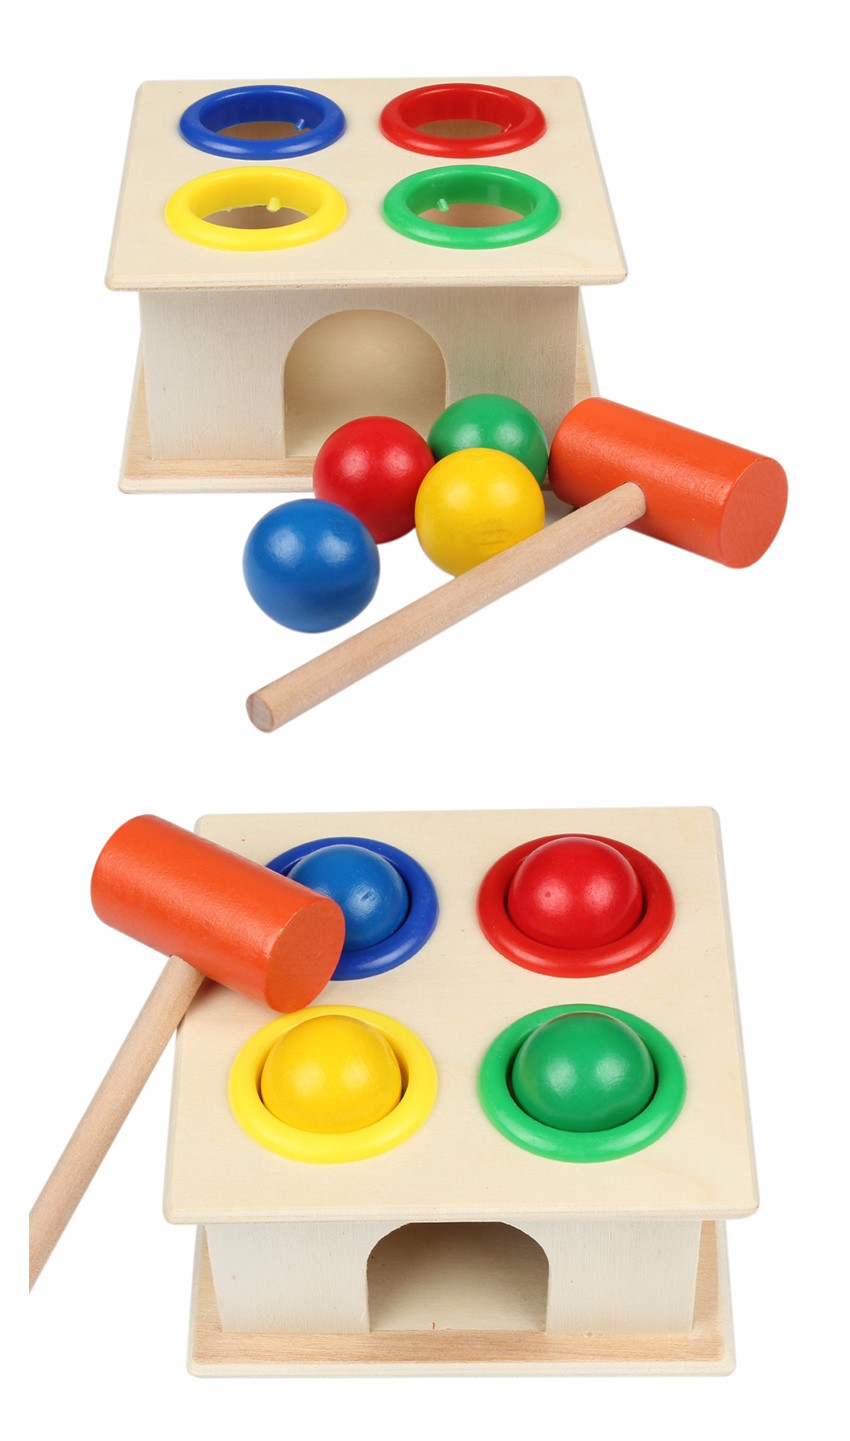 Newborn Colorful Hammering Wooden Ball Hammer Box Geometric Blocks Kids Early Learning Educational Toys Children Gift Toy 4